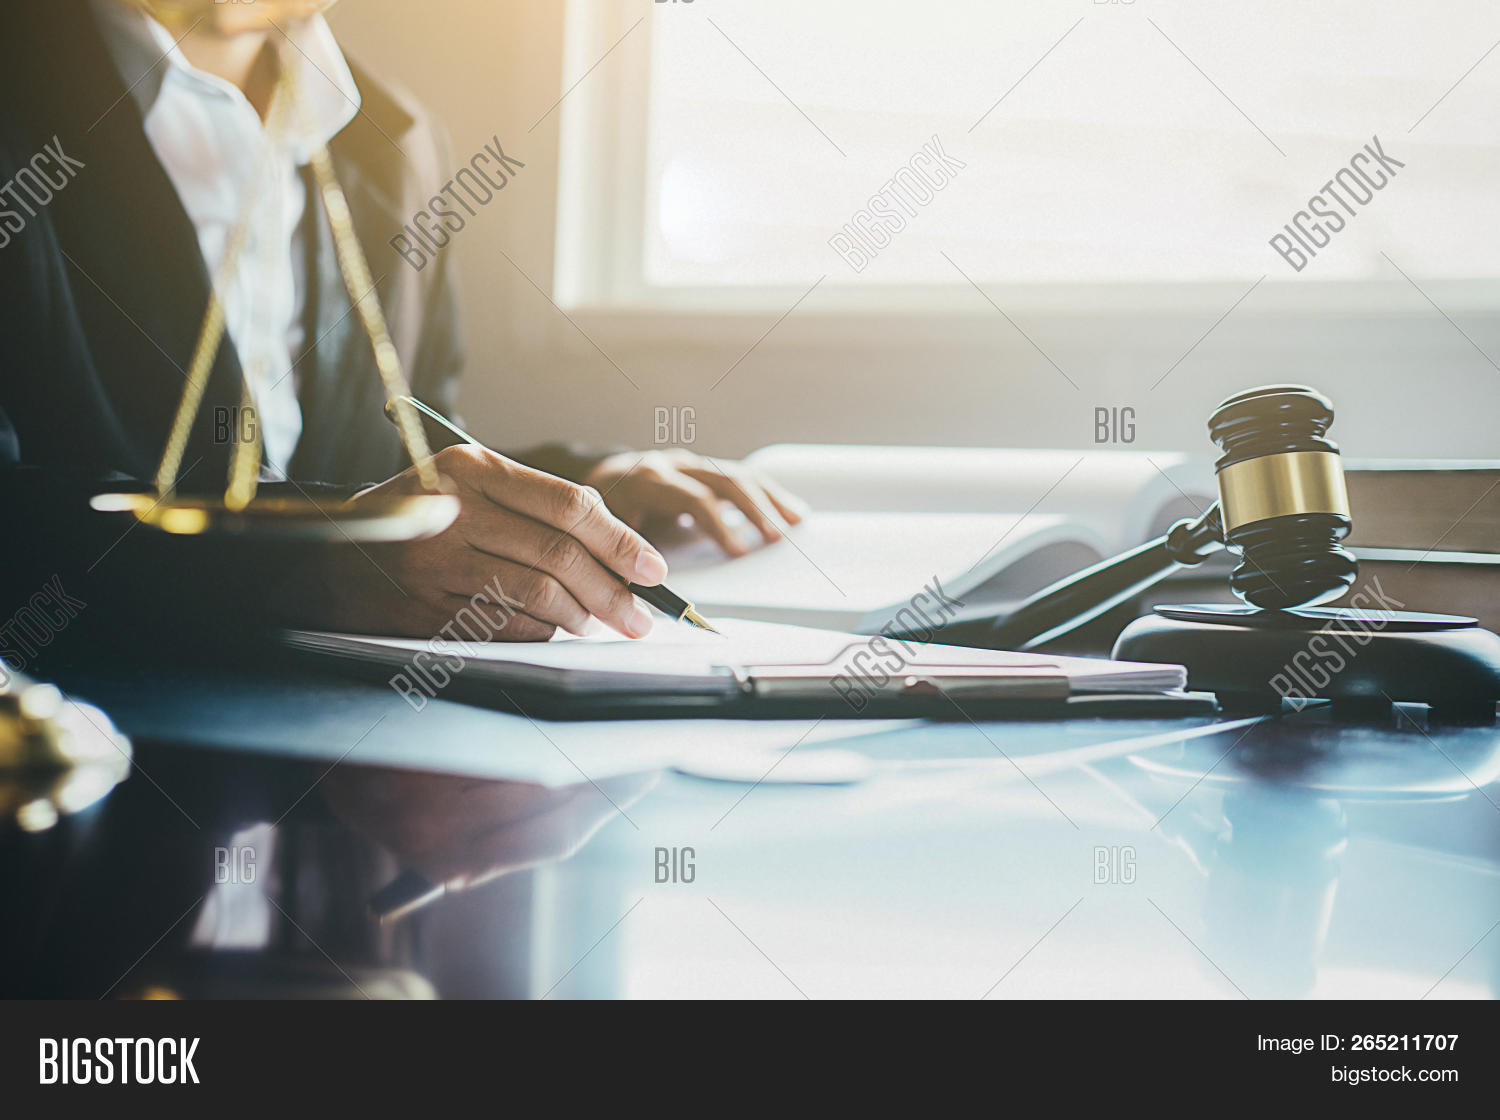 advice,advisor,agent,agreement,attorney,authority,background,barrister,business,communication,concept,consultant,consulting,contract,corporate,counsel,counseling,counselor,court,courthouse,courtroom,criminal,defendant,document,expert,expertise,finance,financial,guilt,happy,information,judge,judgment,justice,law,lawyer,legal,litigation,man,meeting,office,people,professional,punishment,rights,solicitor,support,symbol,trial,verdict